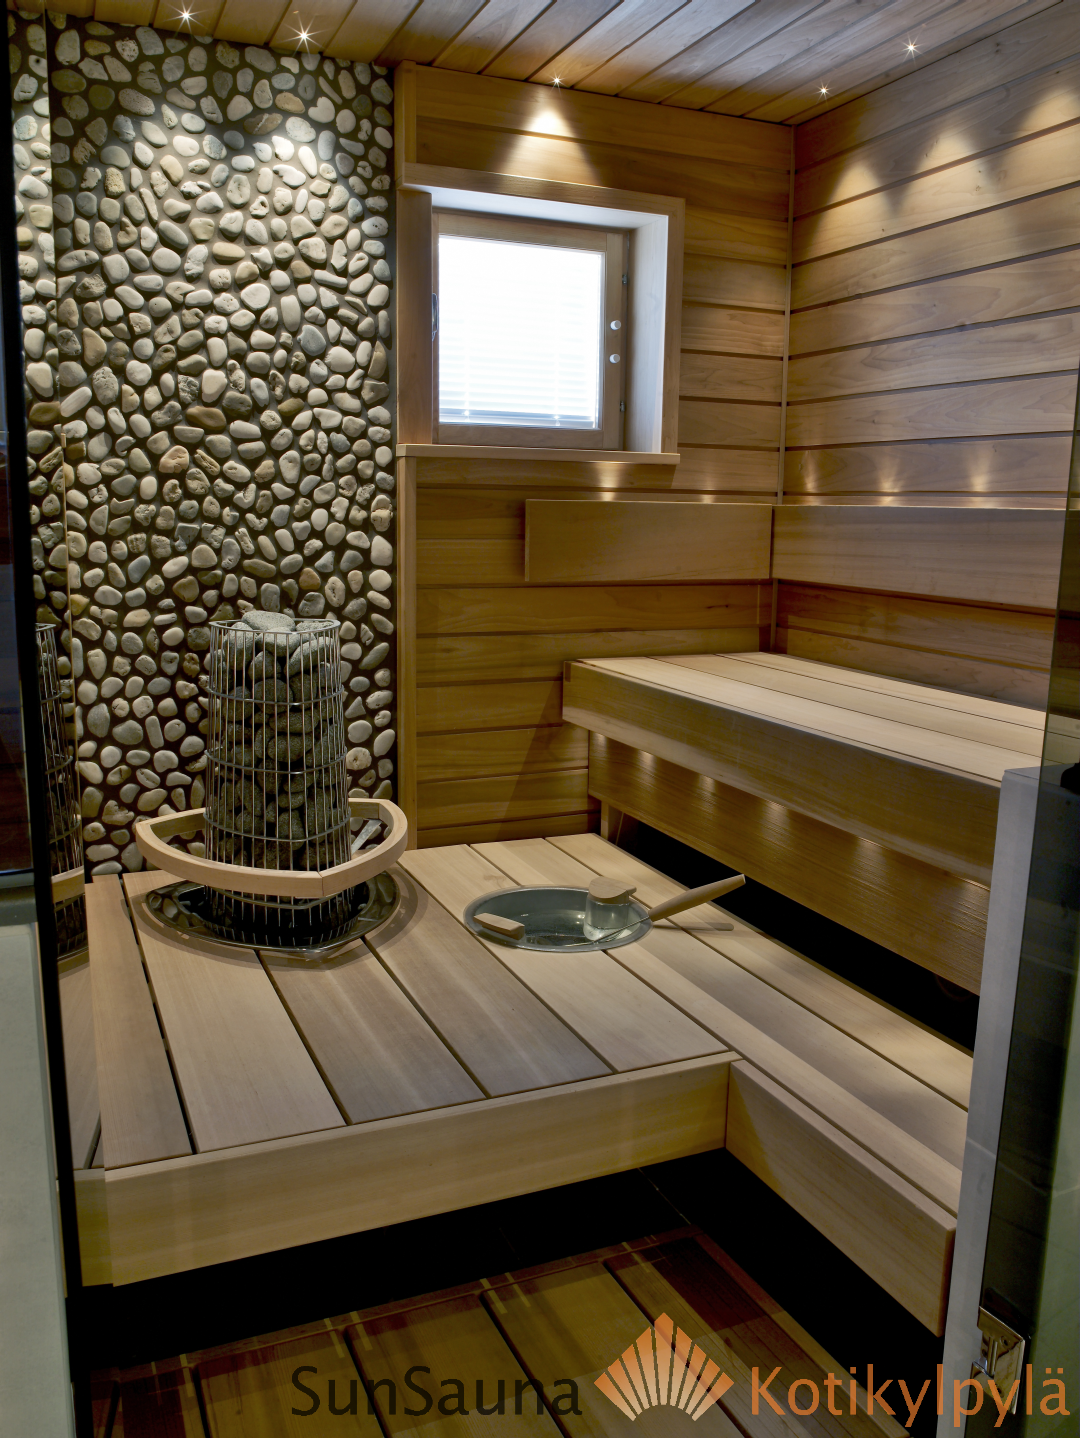 Commendable Designs To Create Diy Sauna People Should Try - Trend Crafts